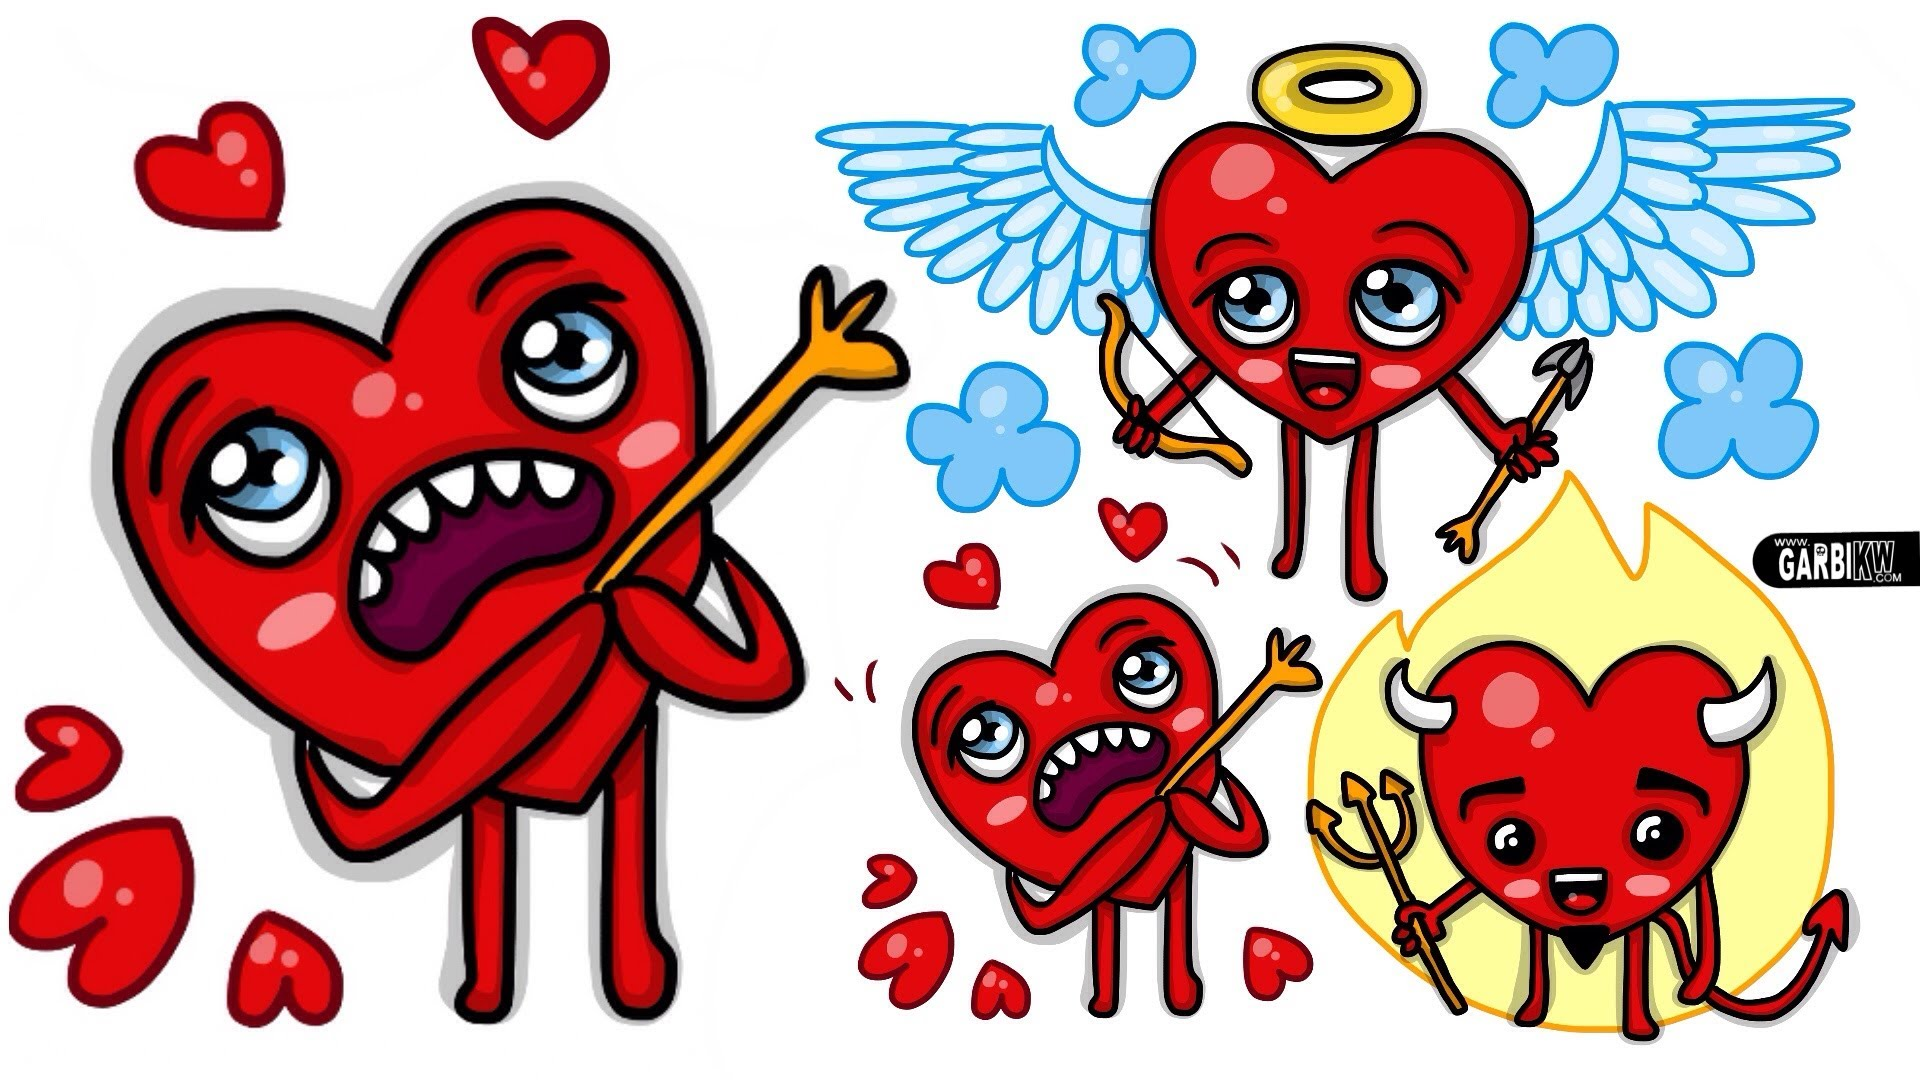 1920x1080 How To Draw A Cupid Heart And A Demon Heart Designs